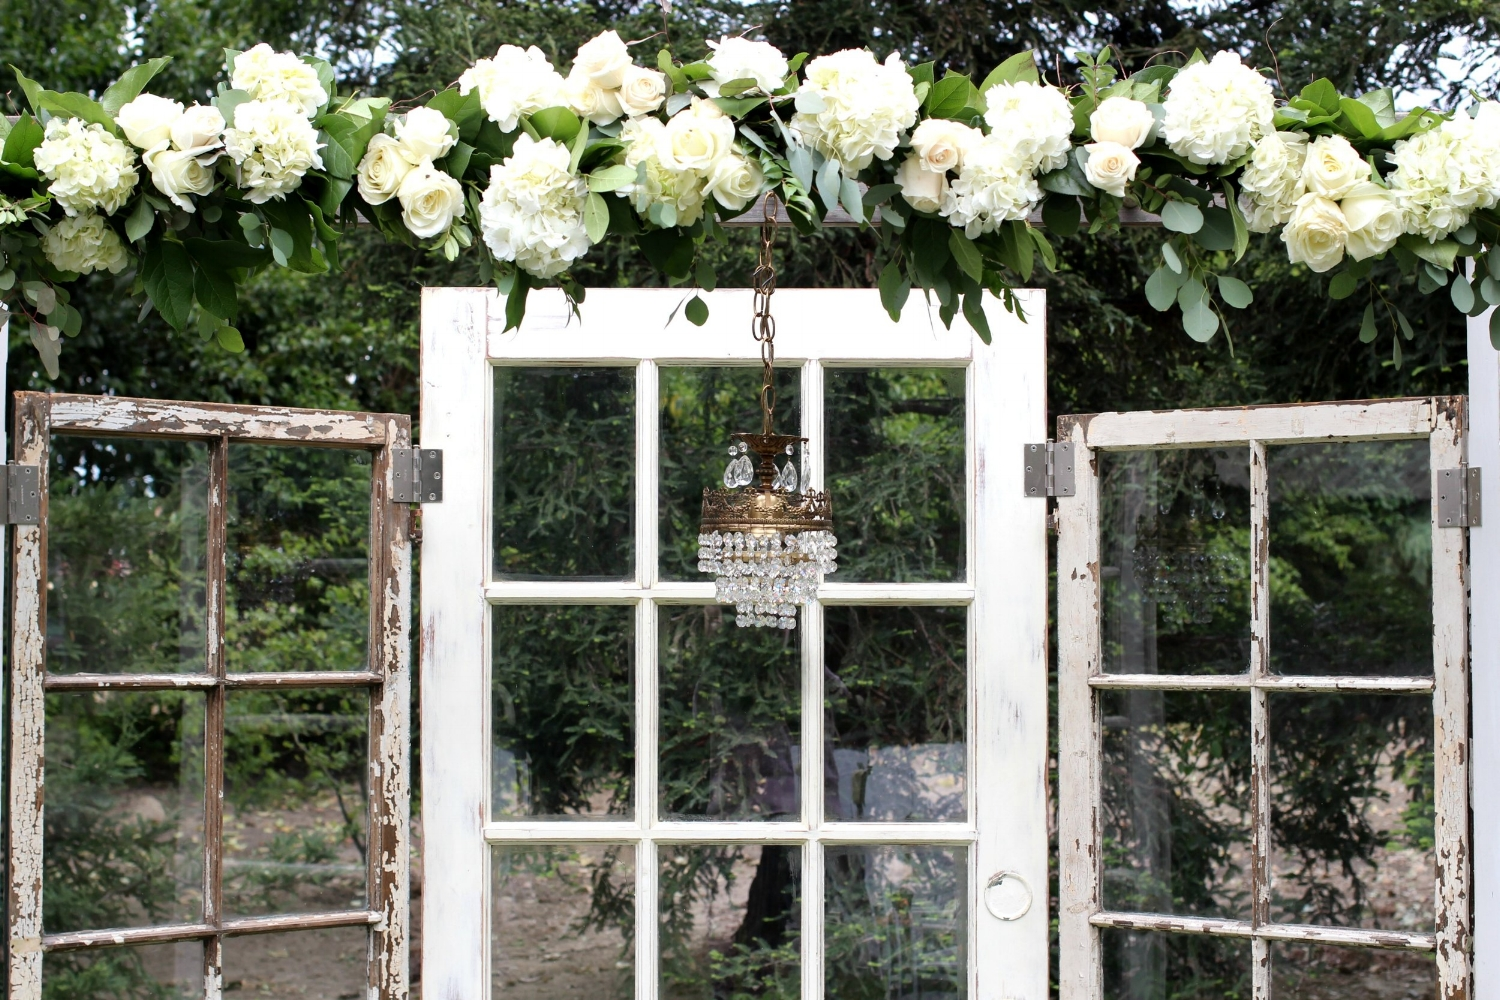 Pageo Farm Wedding - Vintage Door Altar Backdrop